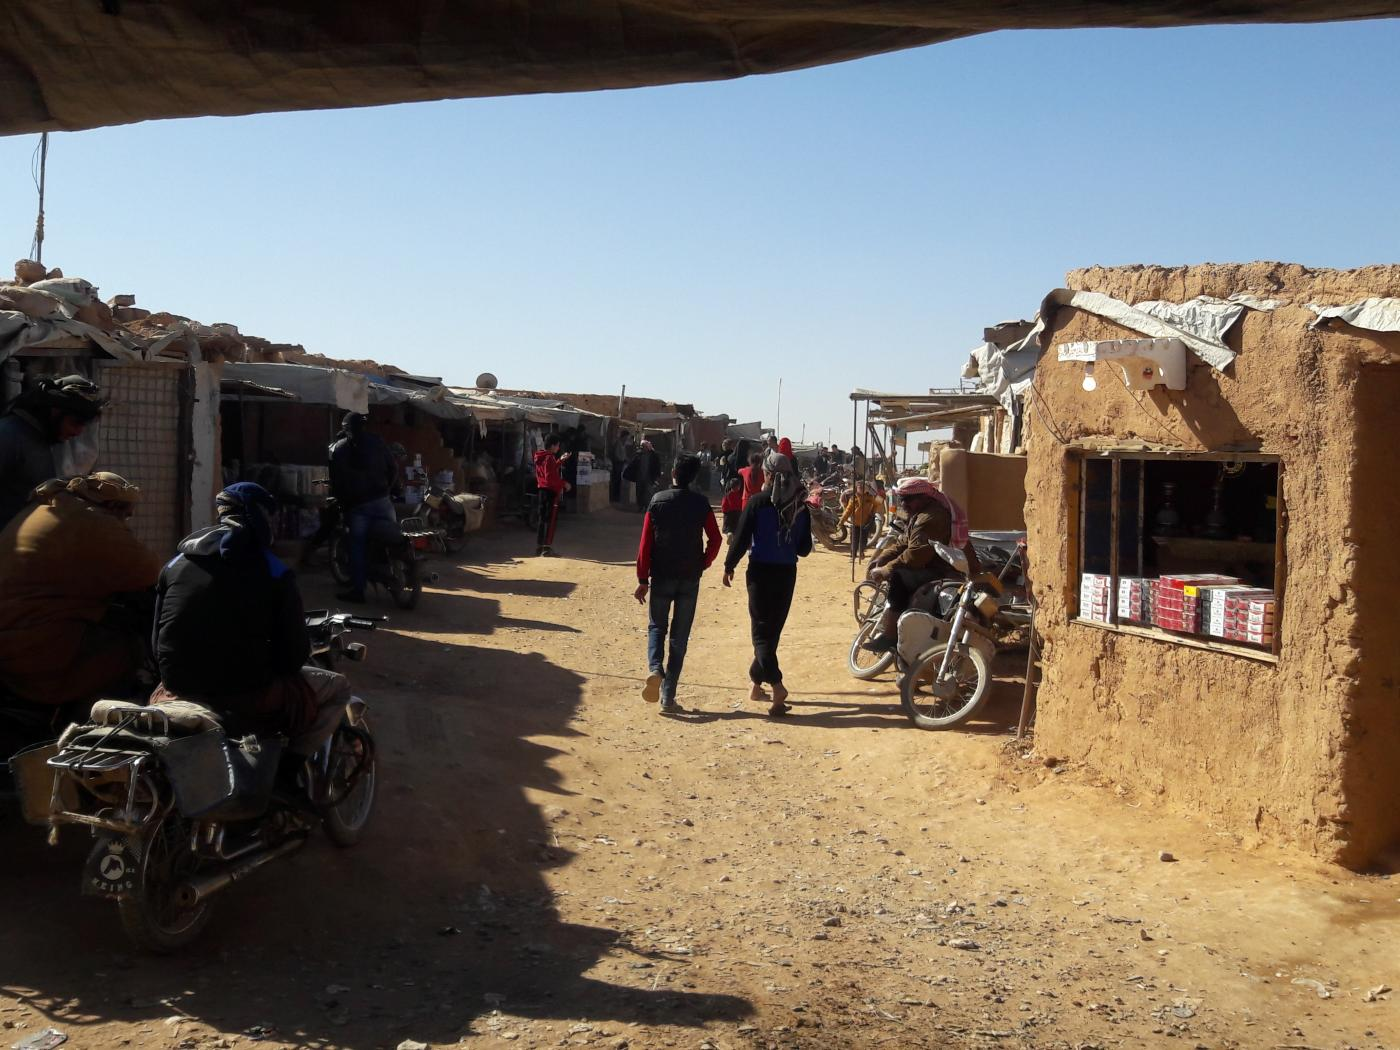 'On the cusp of death': Bread and flour run out in Syria's Rukban camp